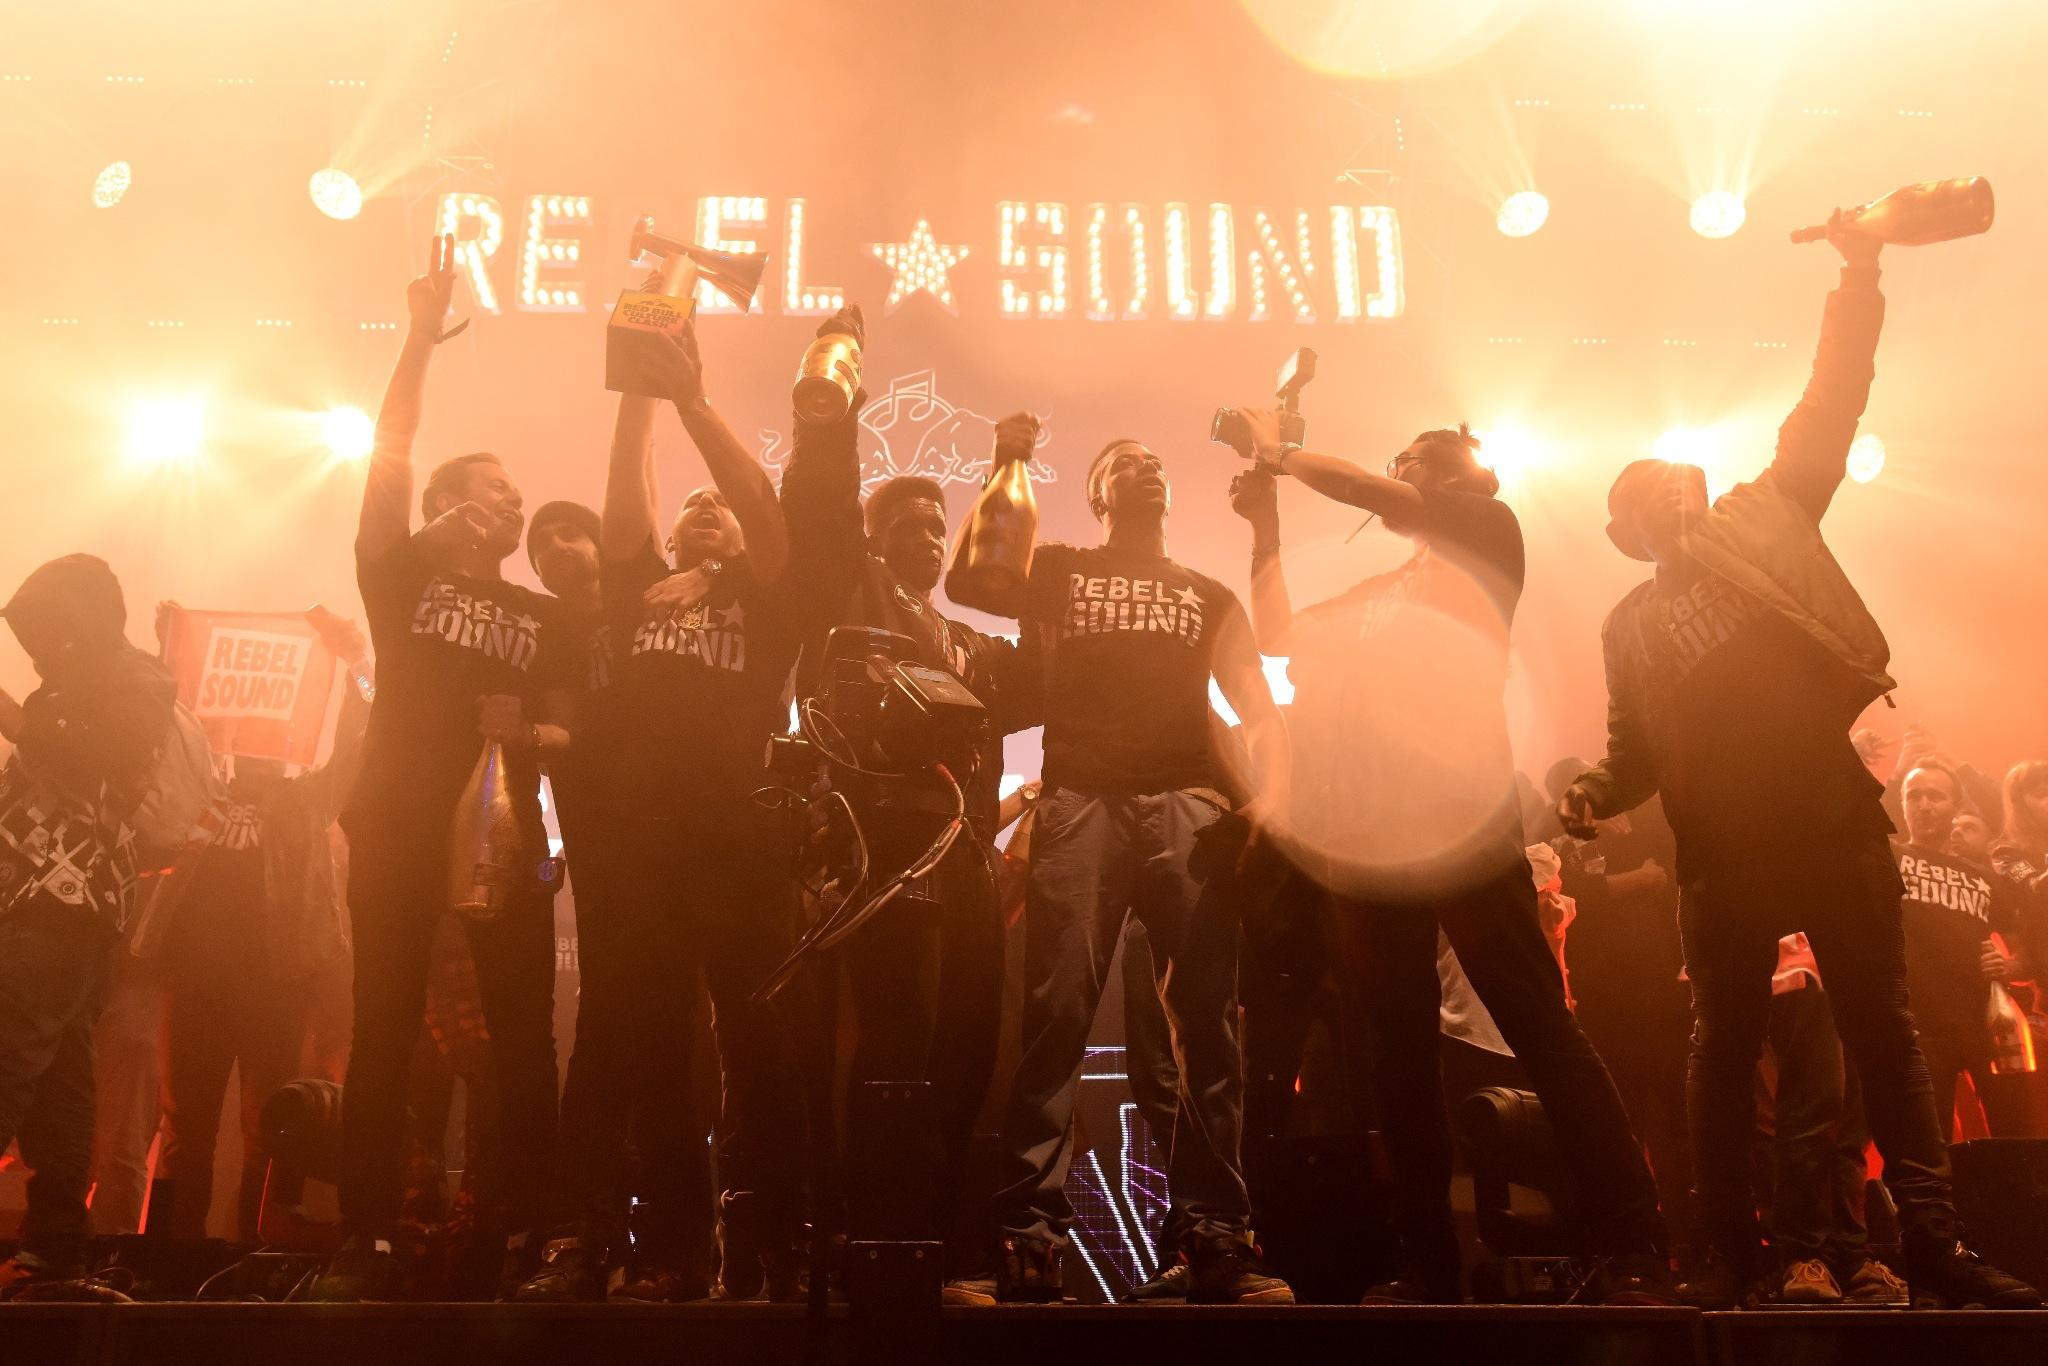 Give it up for #CultureClash champions Rebel Sound. Which crew did you back? http://t.co/at5ozbz3KP